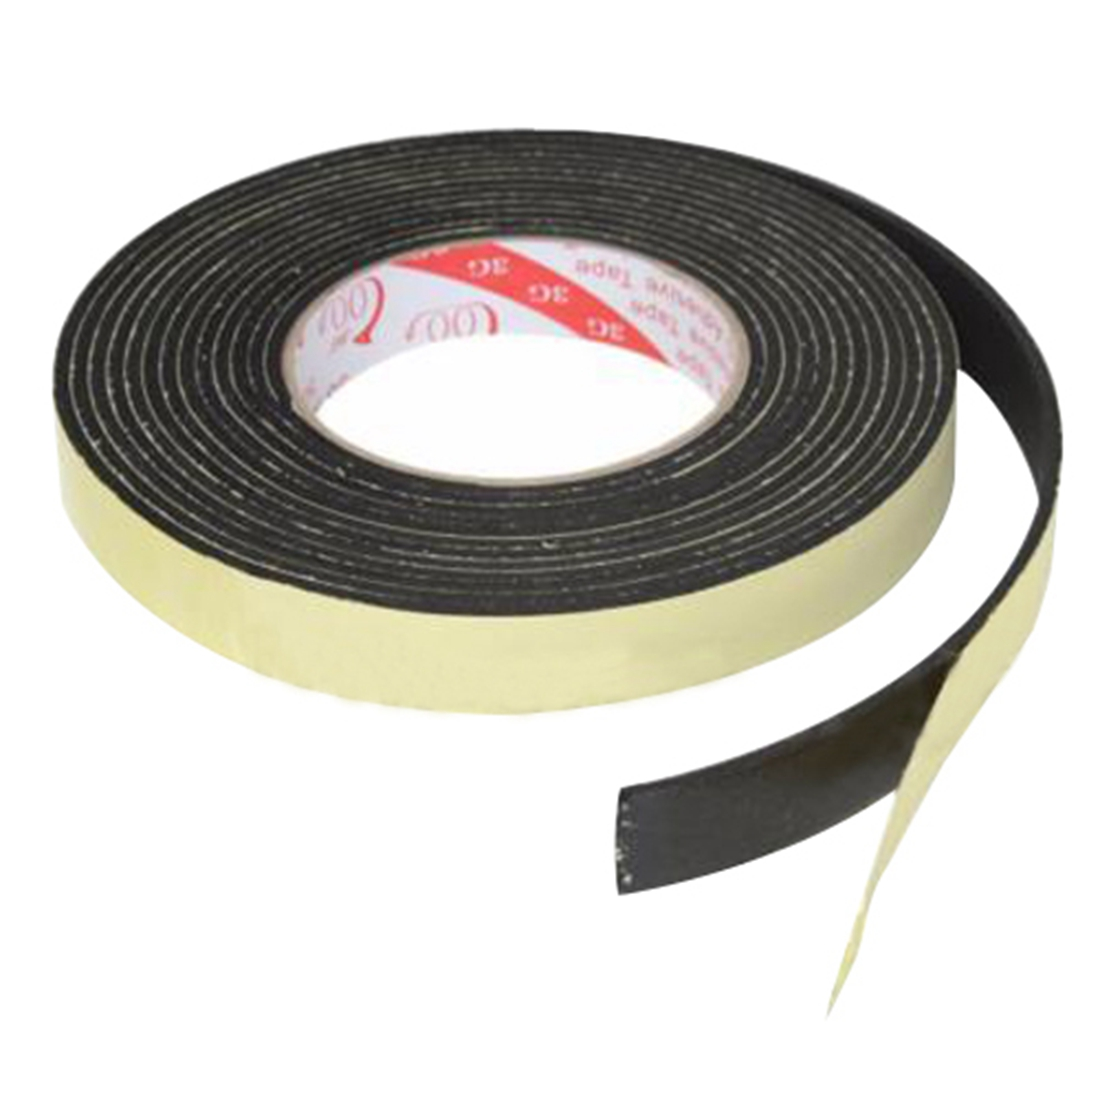 5m Black Single Sided Self Adhesive Foam Tape Closed Cell 20mm Wide x 3mm Thick светодиодный спот eglo tamara 1 95994